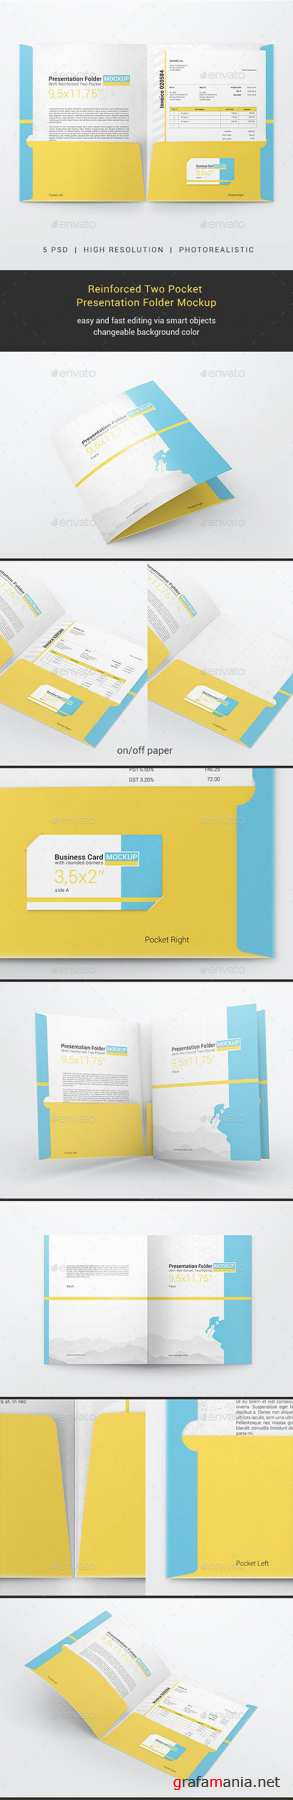 GR - Reinforced Two Pocket Presentation Folder Mockup 23076382